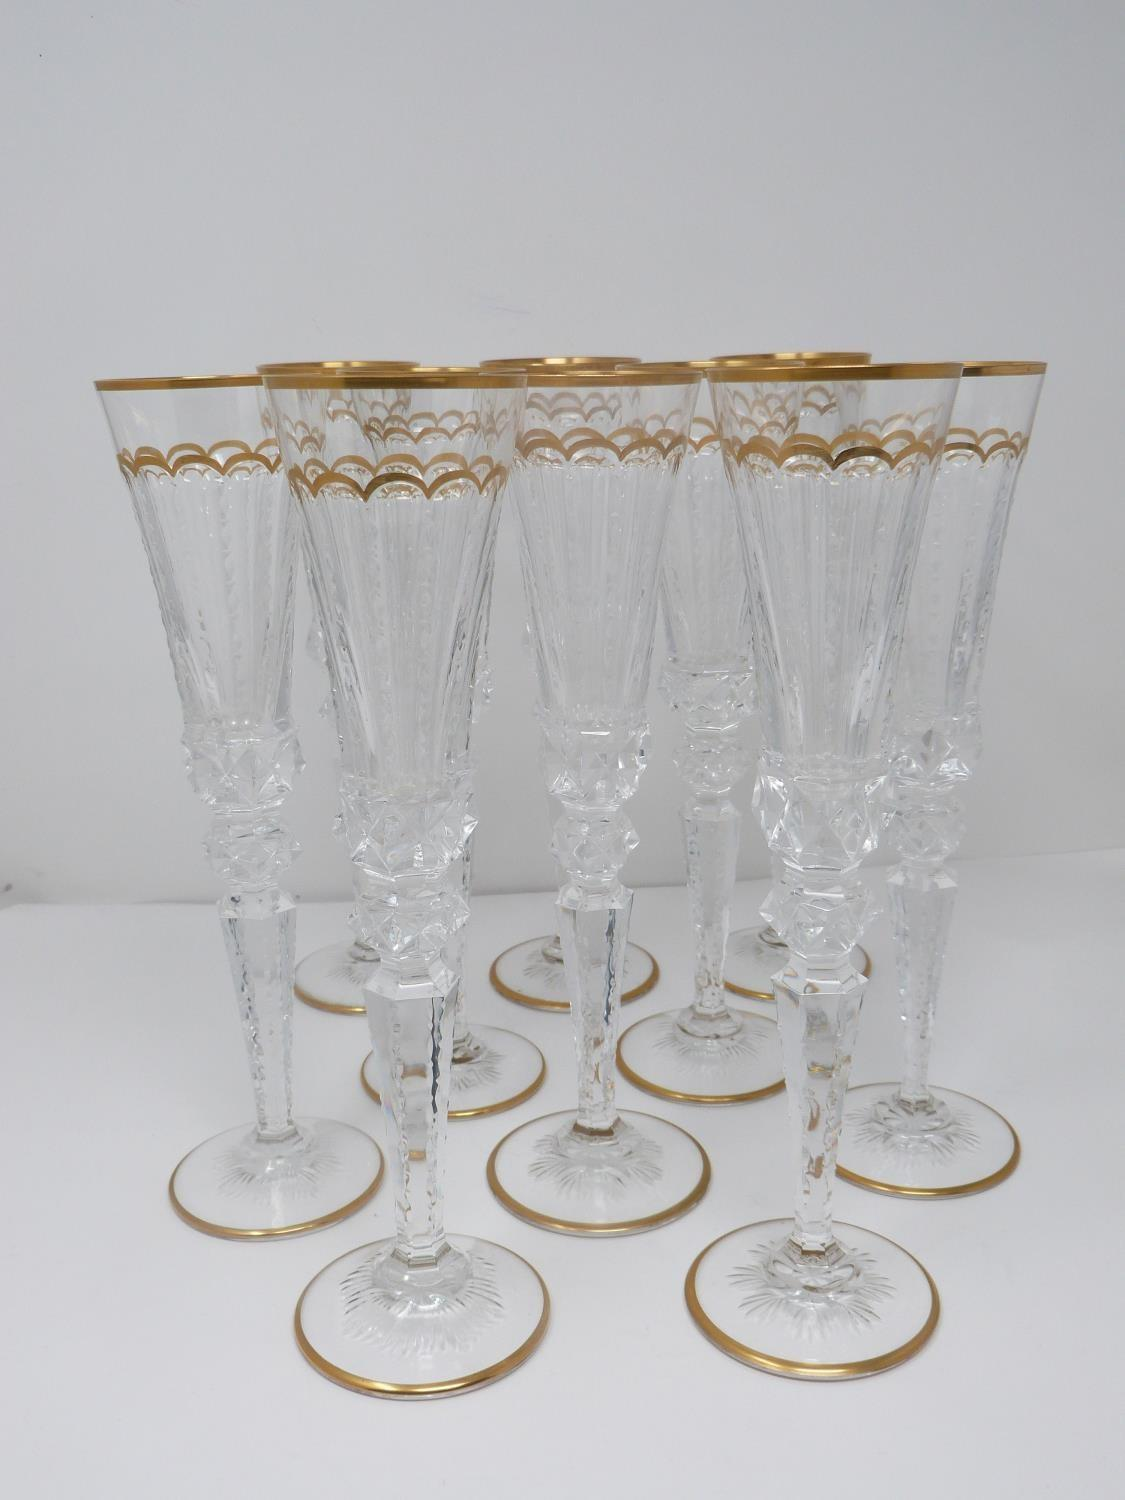 A set of ten St Louis Excellence crystal champagne glasses,with gilded scalloped detailing and